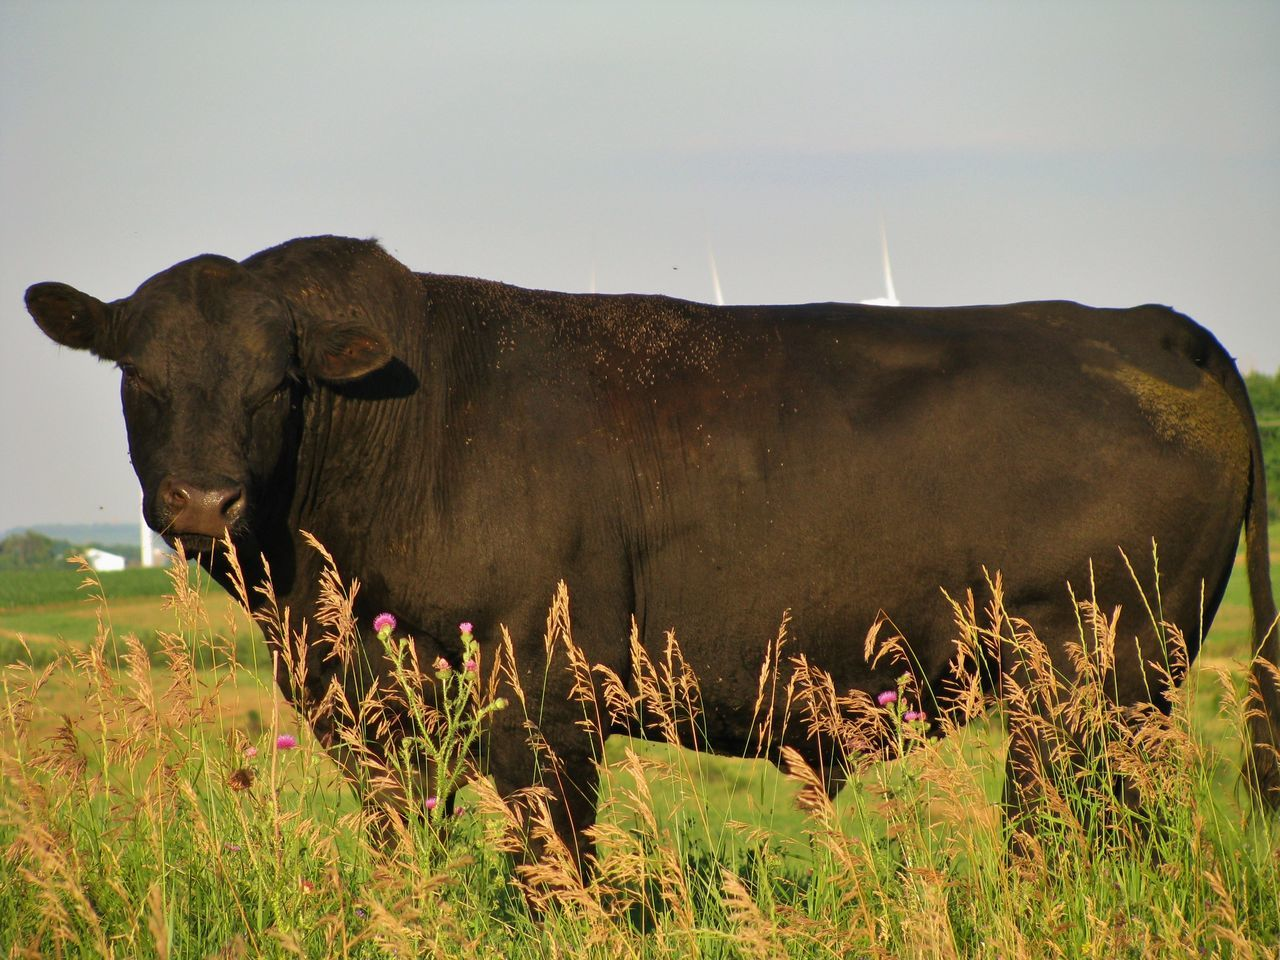 Big Bull Agriculture Animal Beef Black Black Angus Bull Canonphotography Cattle Grass Livestock Pasture